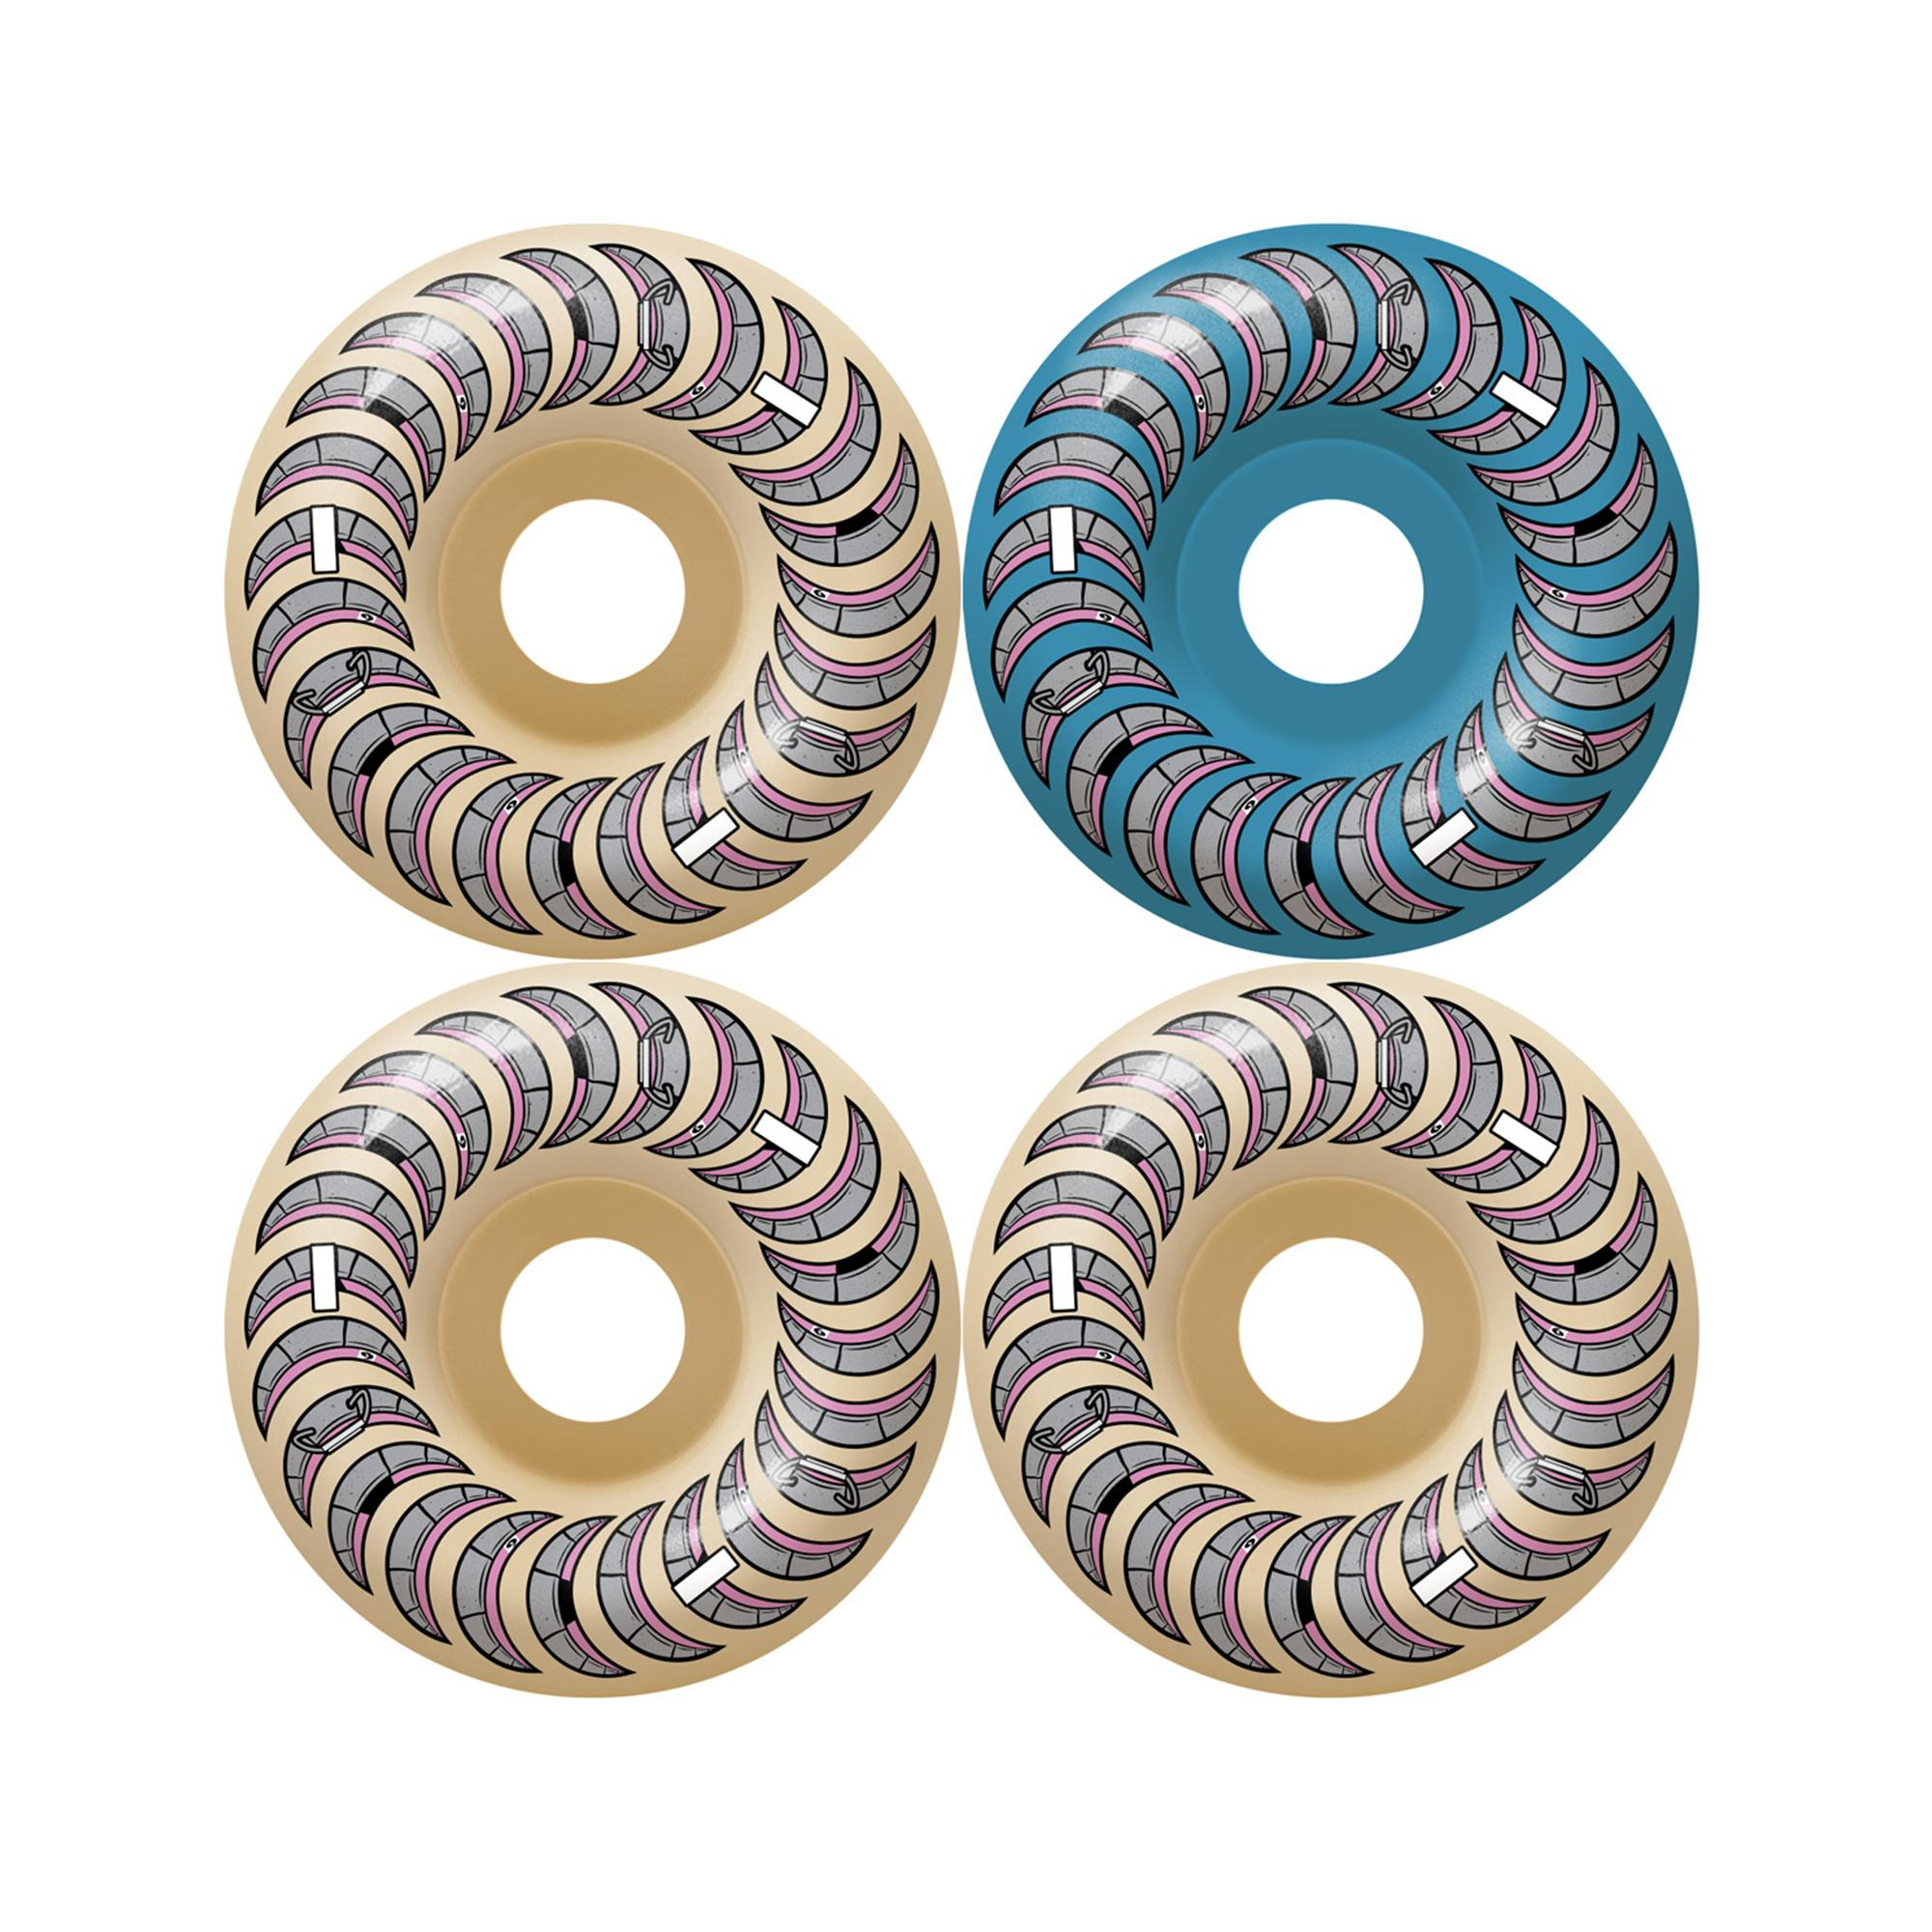 Spitfire Formula Four Classic Full 99 Wheels Product Photo #4